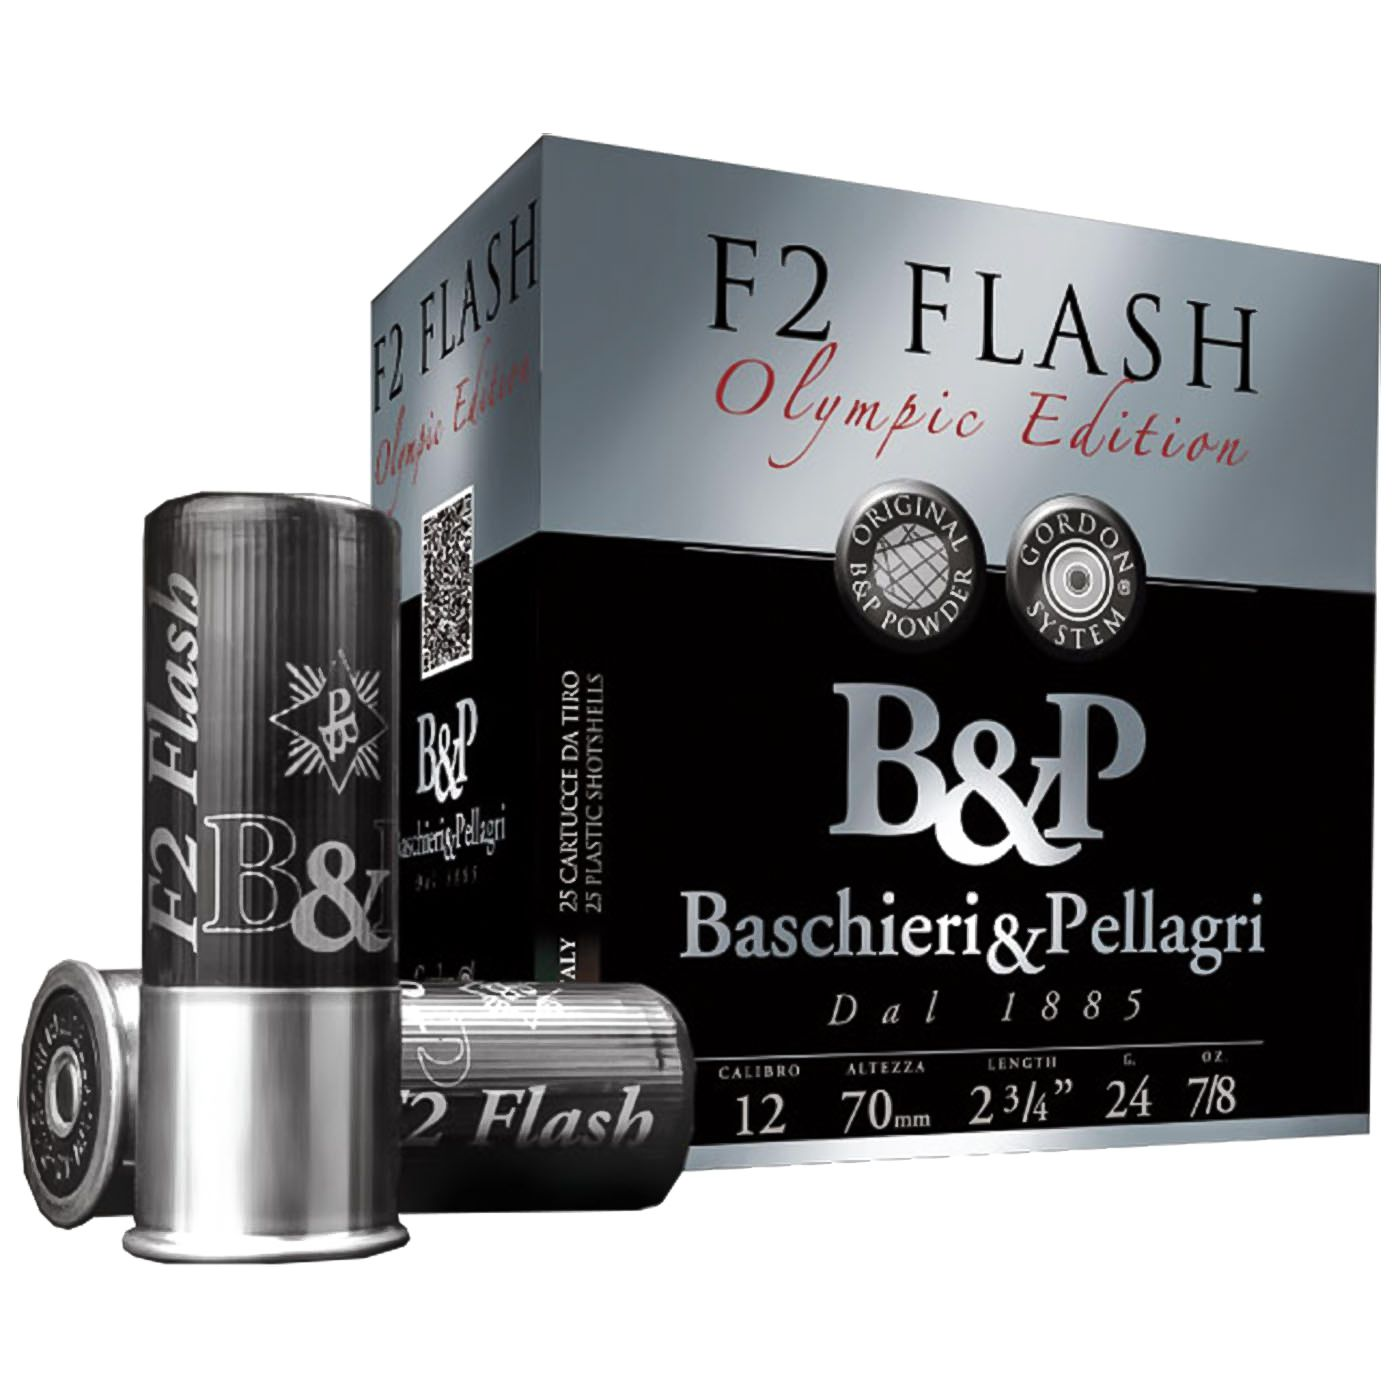 "F2 Flash Olympic Edition 2¾"" 12g"